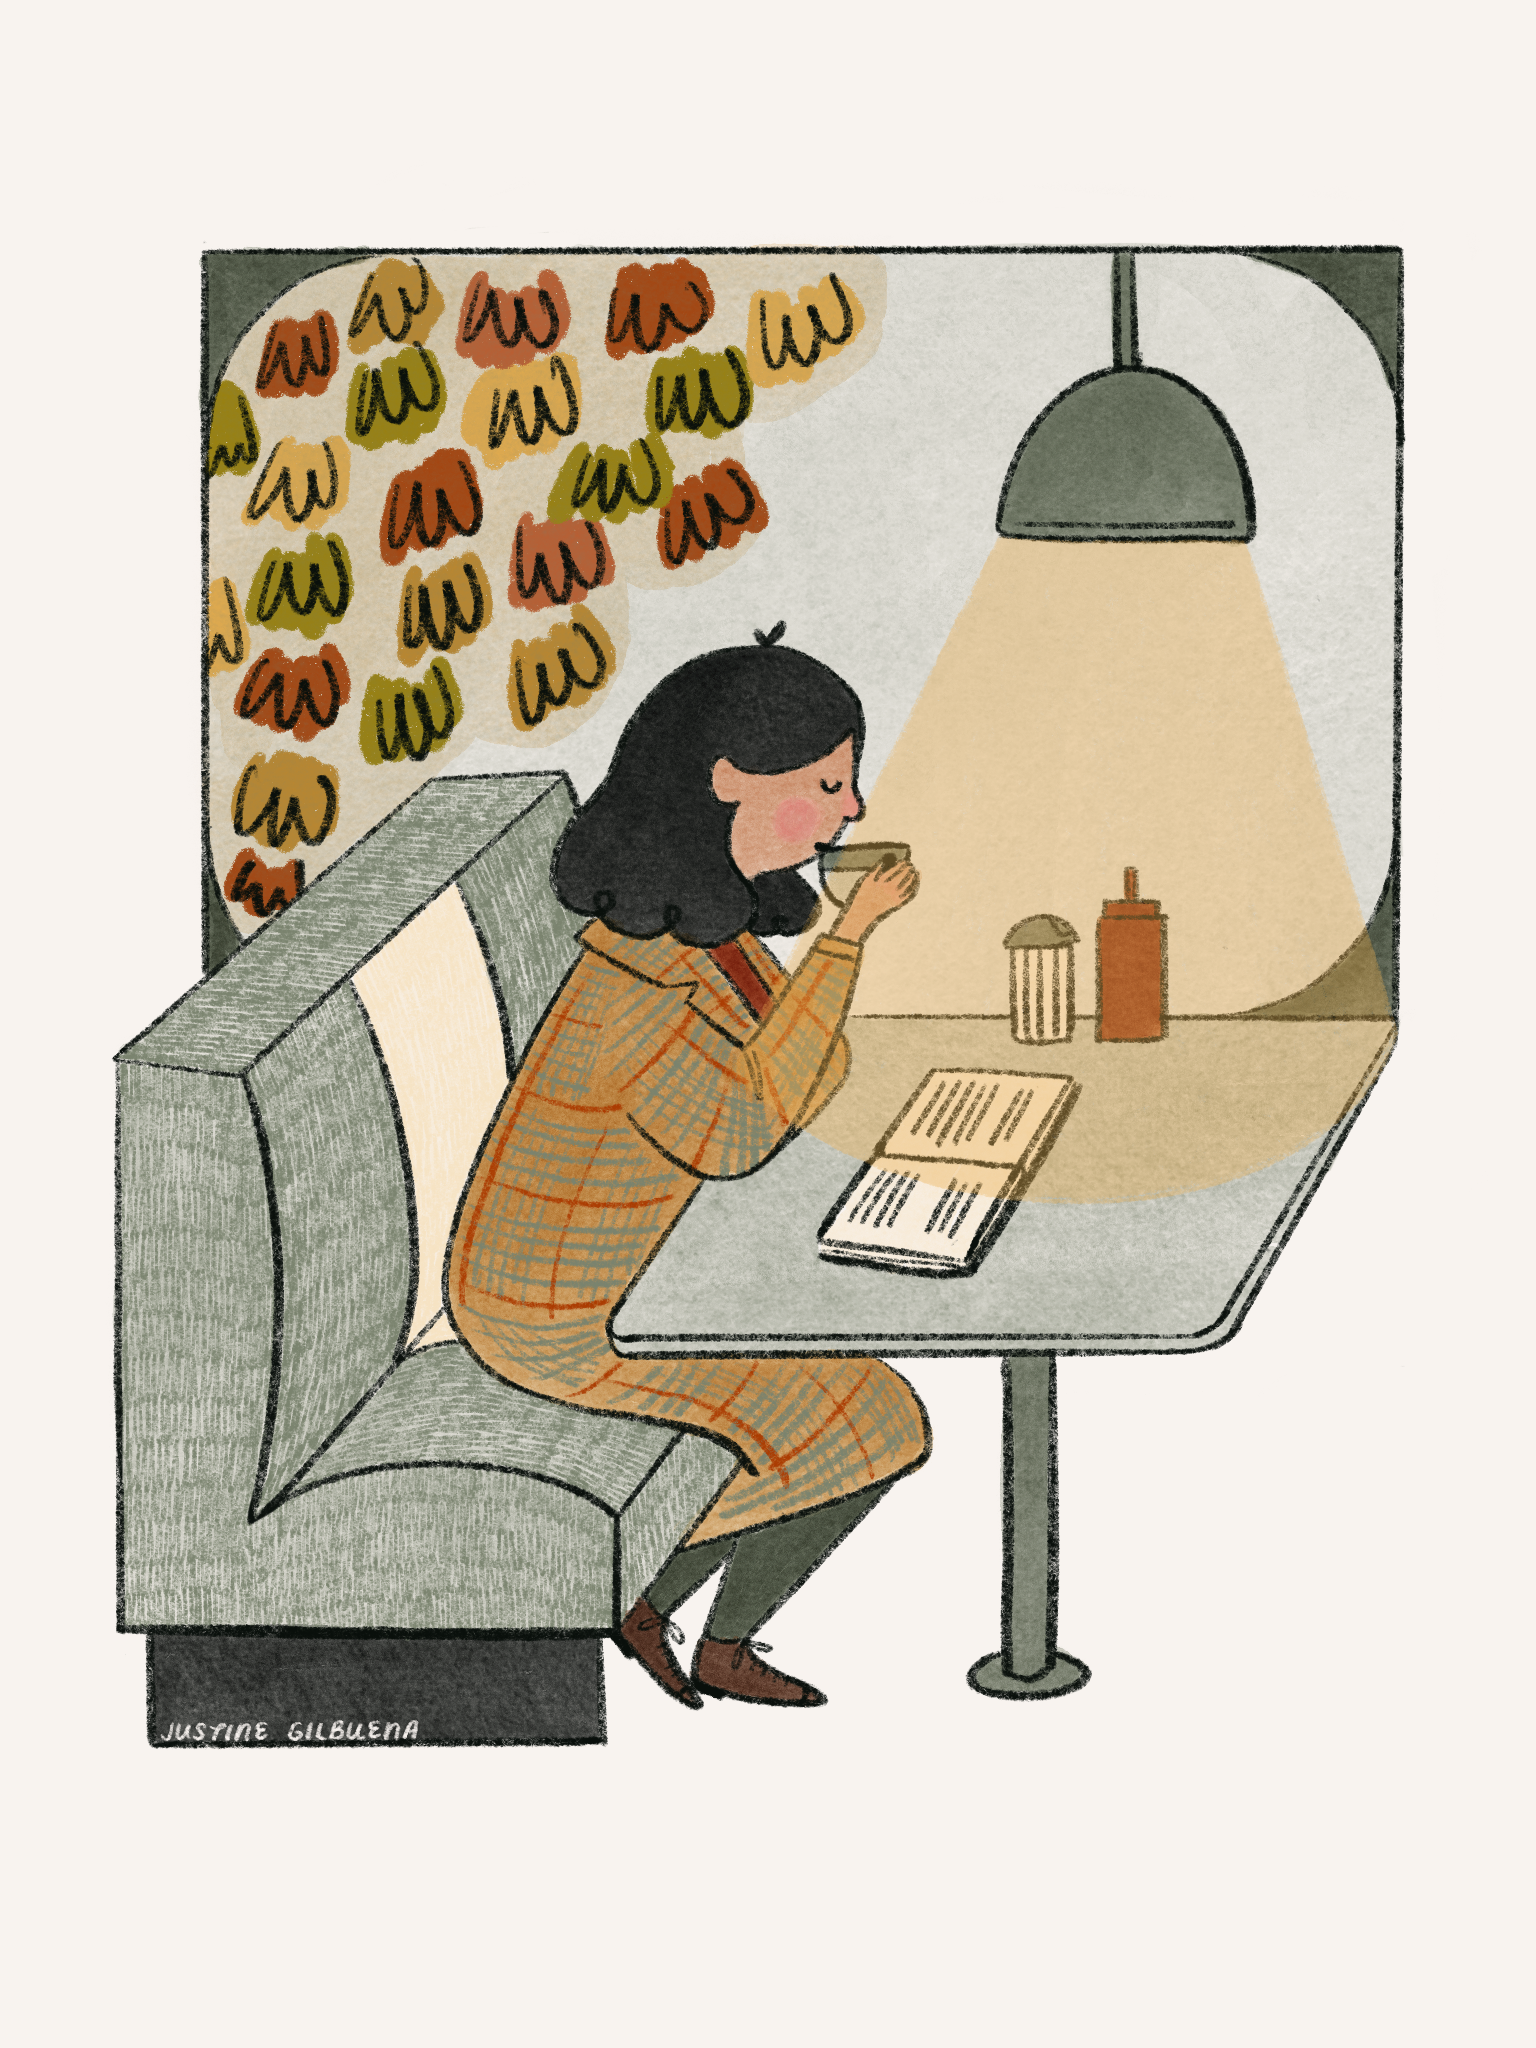 At The Diner by Justine Gilbuena.png